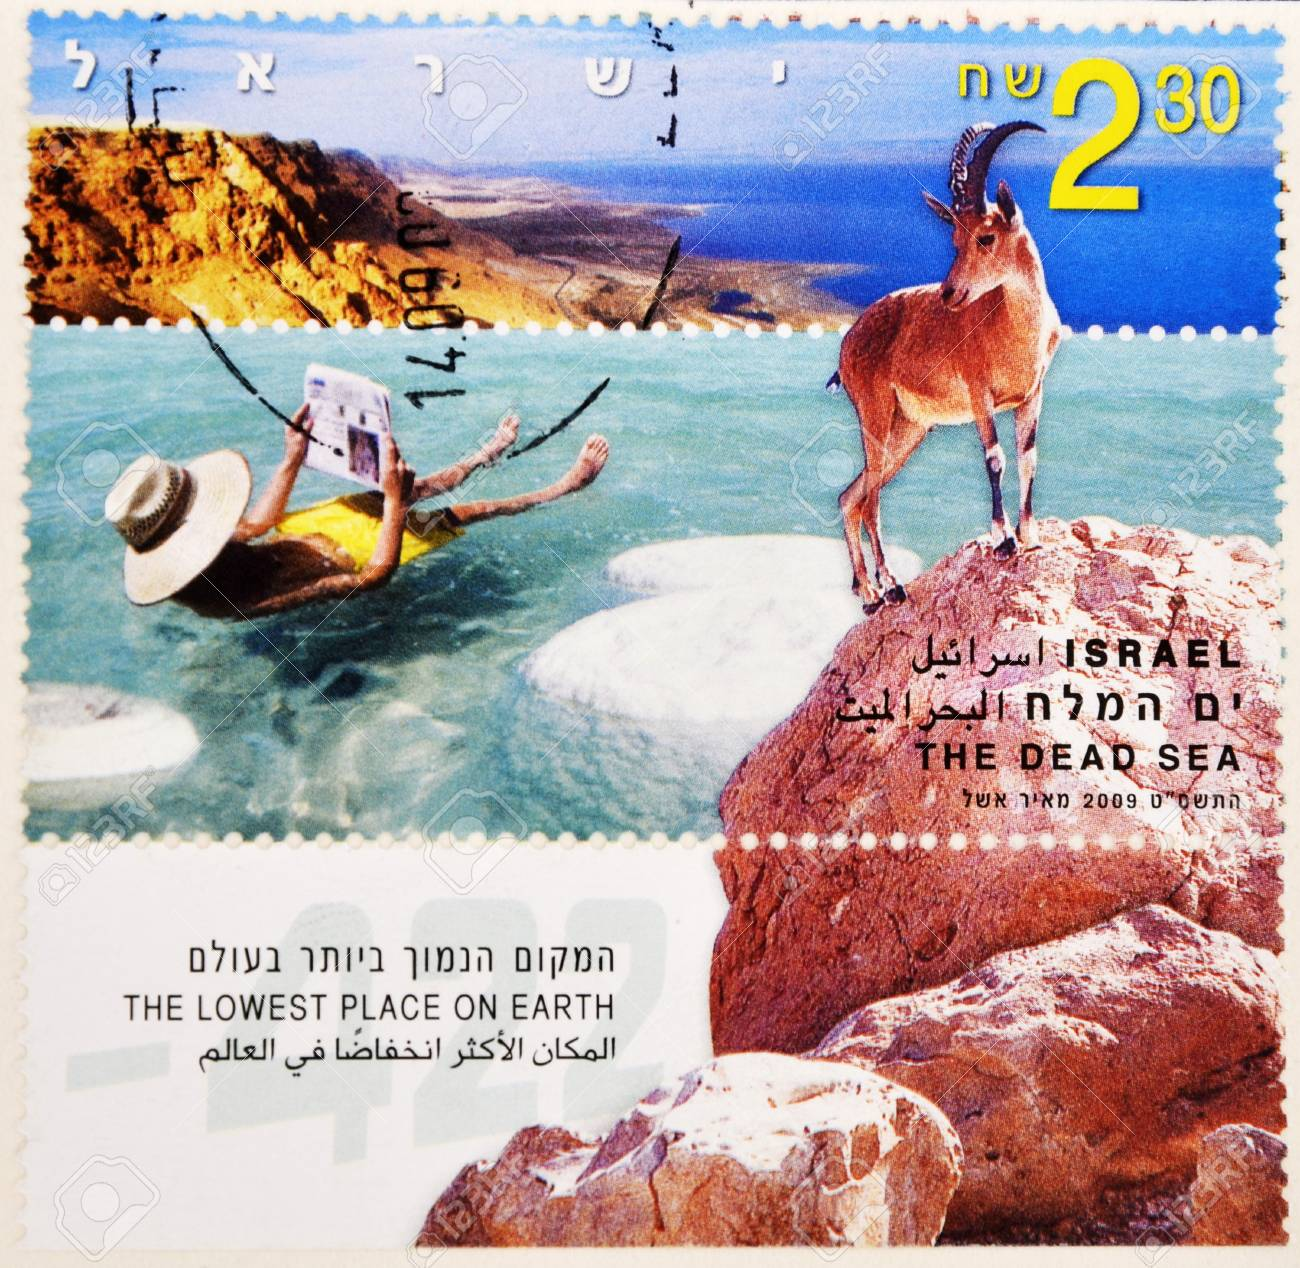 ISRAEL - CIRCA 2009: A stamp printed in Israel showing the dead sea, the lowest place on earth, circa 2009 Stock Photo - 10419734